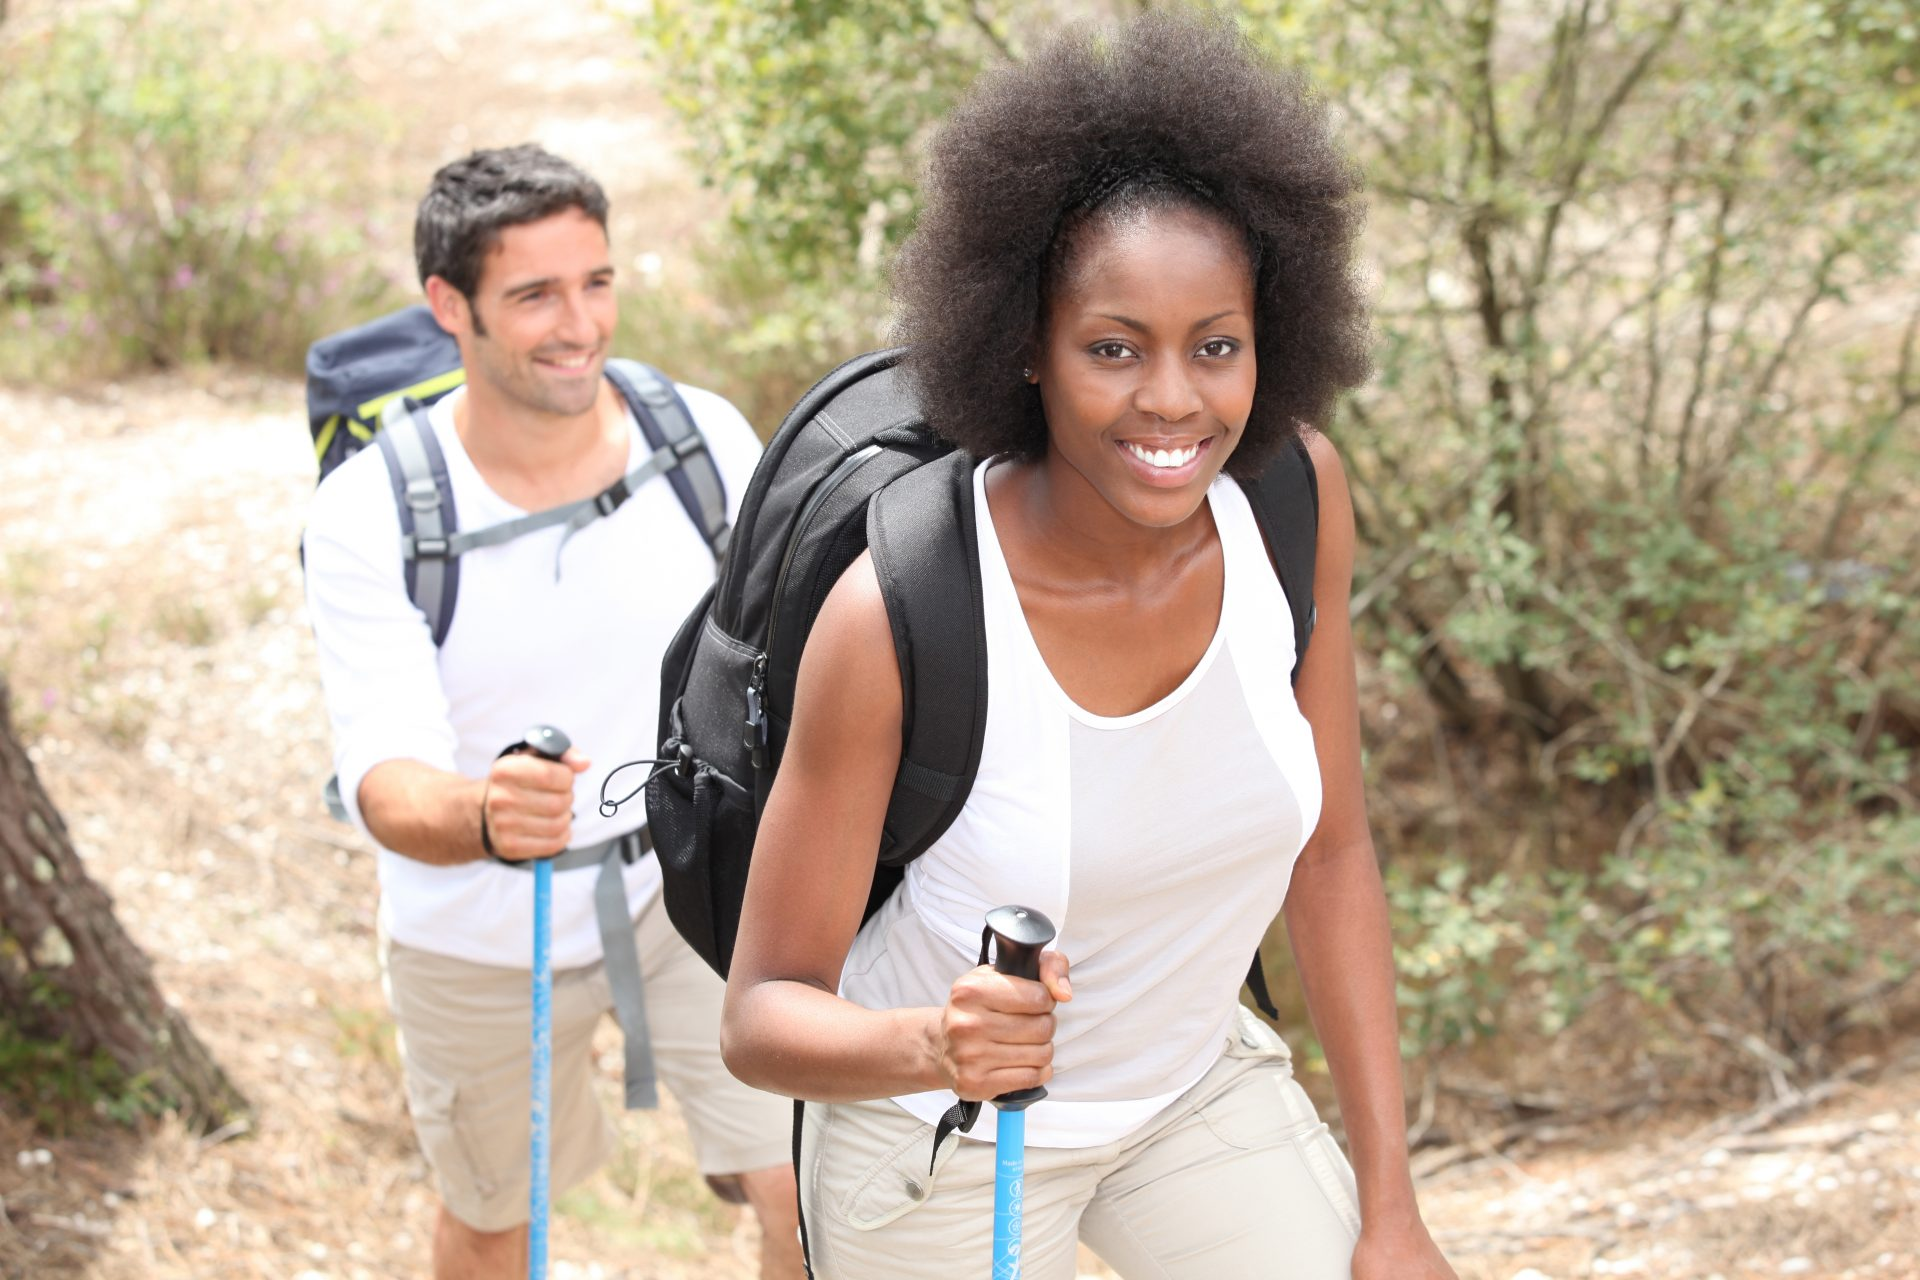 black woman hiker with white man behind, black backers